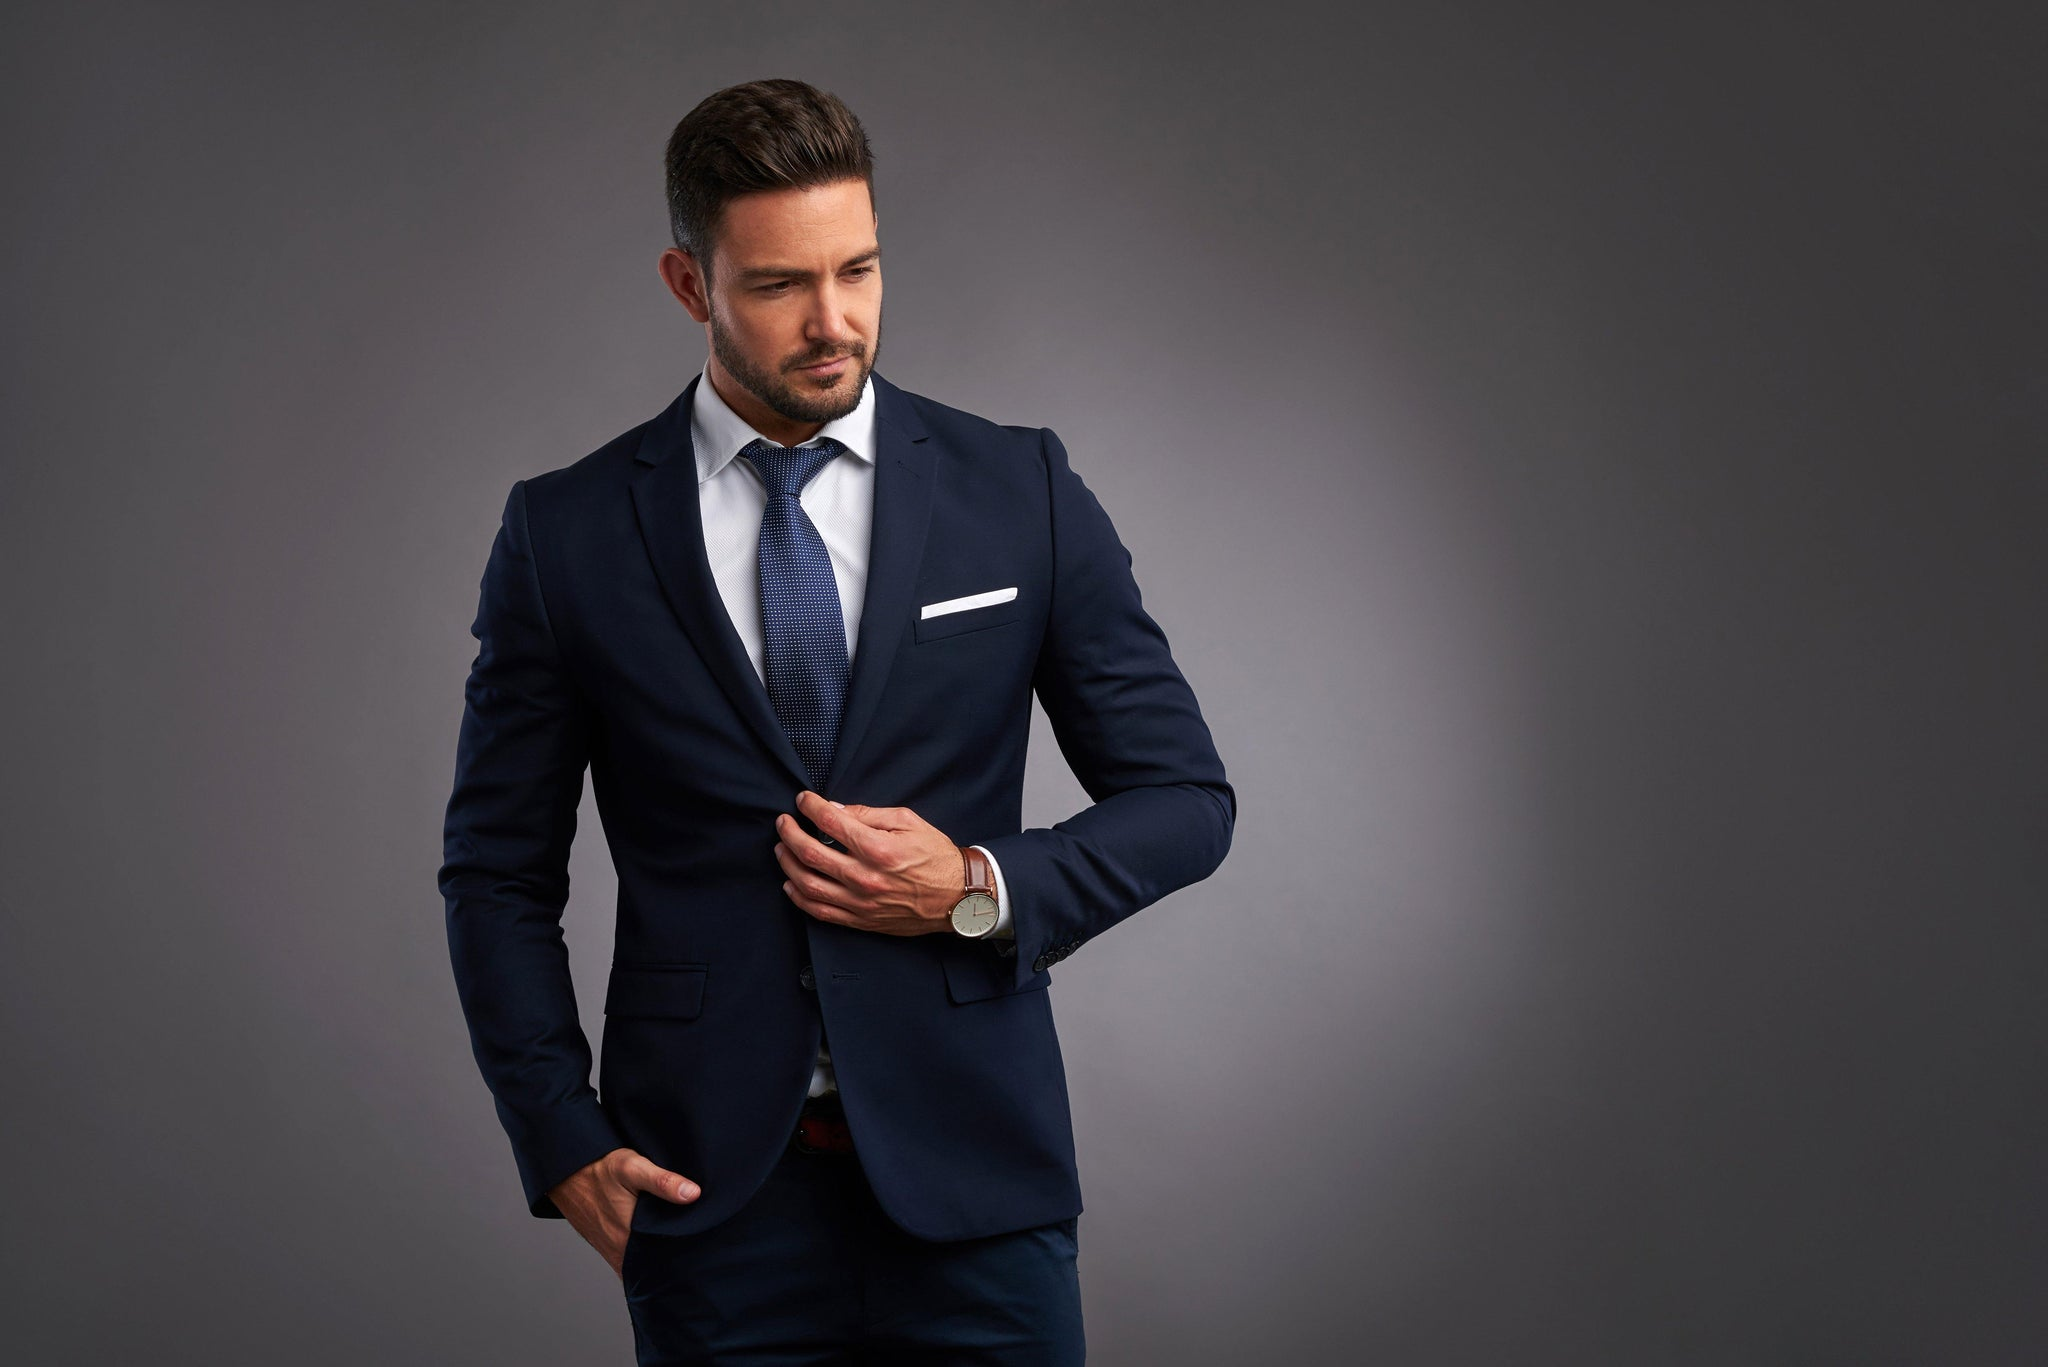 Men's Suit Jacket Alterations from Tad More Tailoring